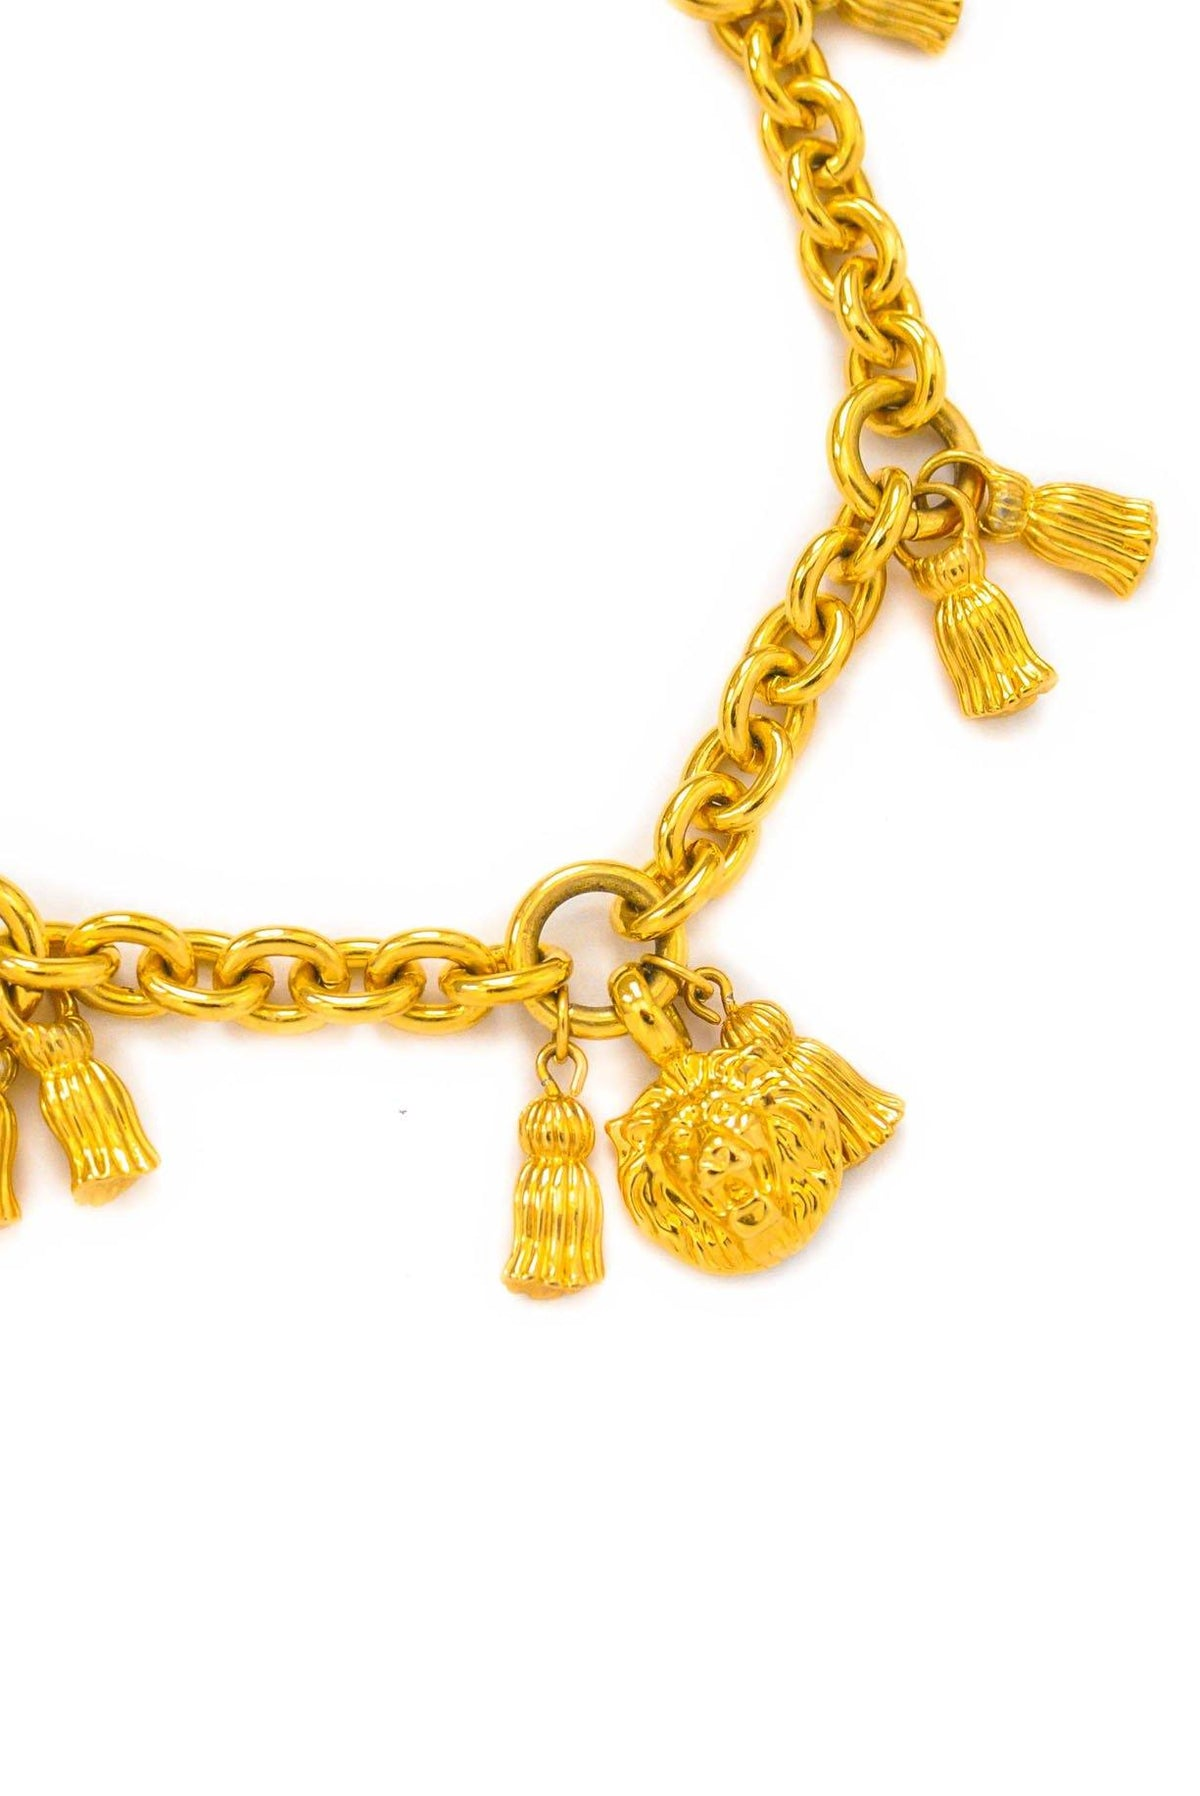 Vintage Anne Klein Lion Charm Necklace from Sweet and Spark